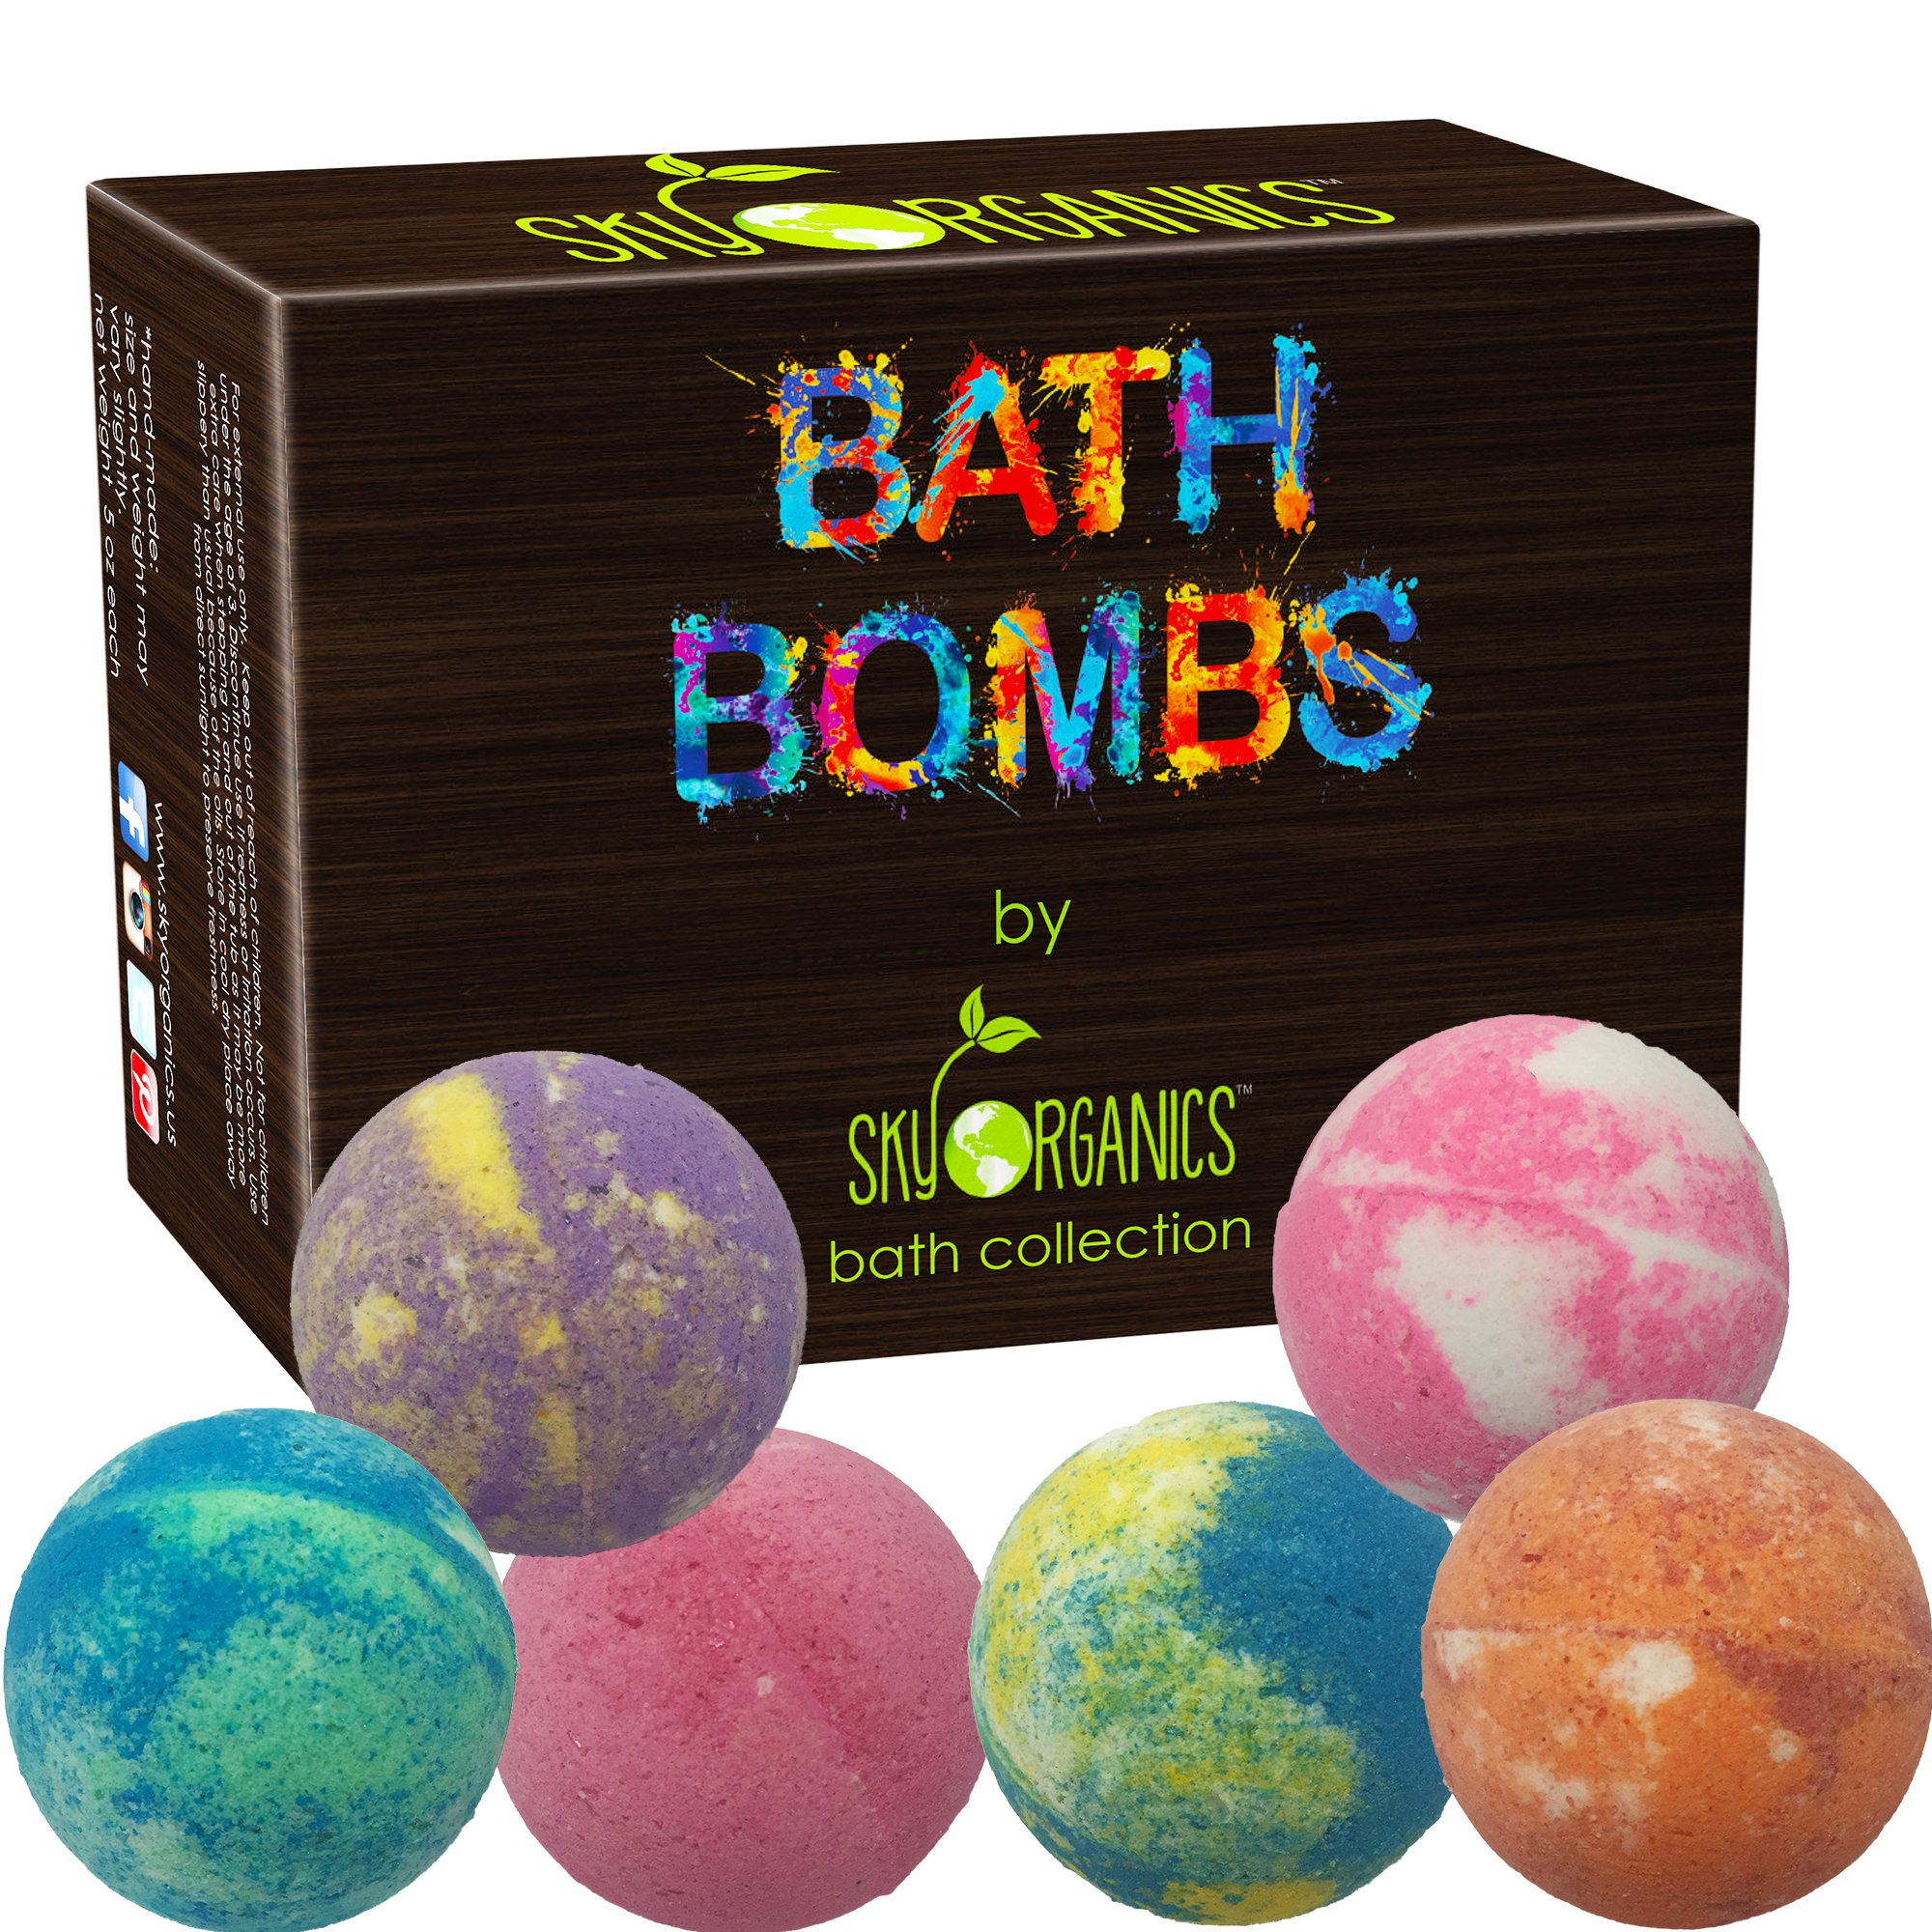 Bath Bombs Gift Set by Sky Organics, 6 x 5 Oz Ultra Lush Huge Bath Bombs Kit, Best for Aromatherapy, Relaxation, Moisturizing with Organic & Natural Essential Oils -Handmade Organic Spa Fizzies